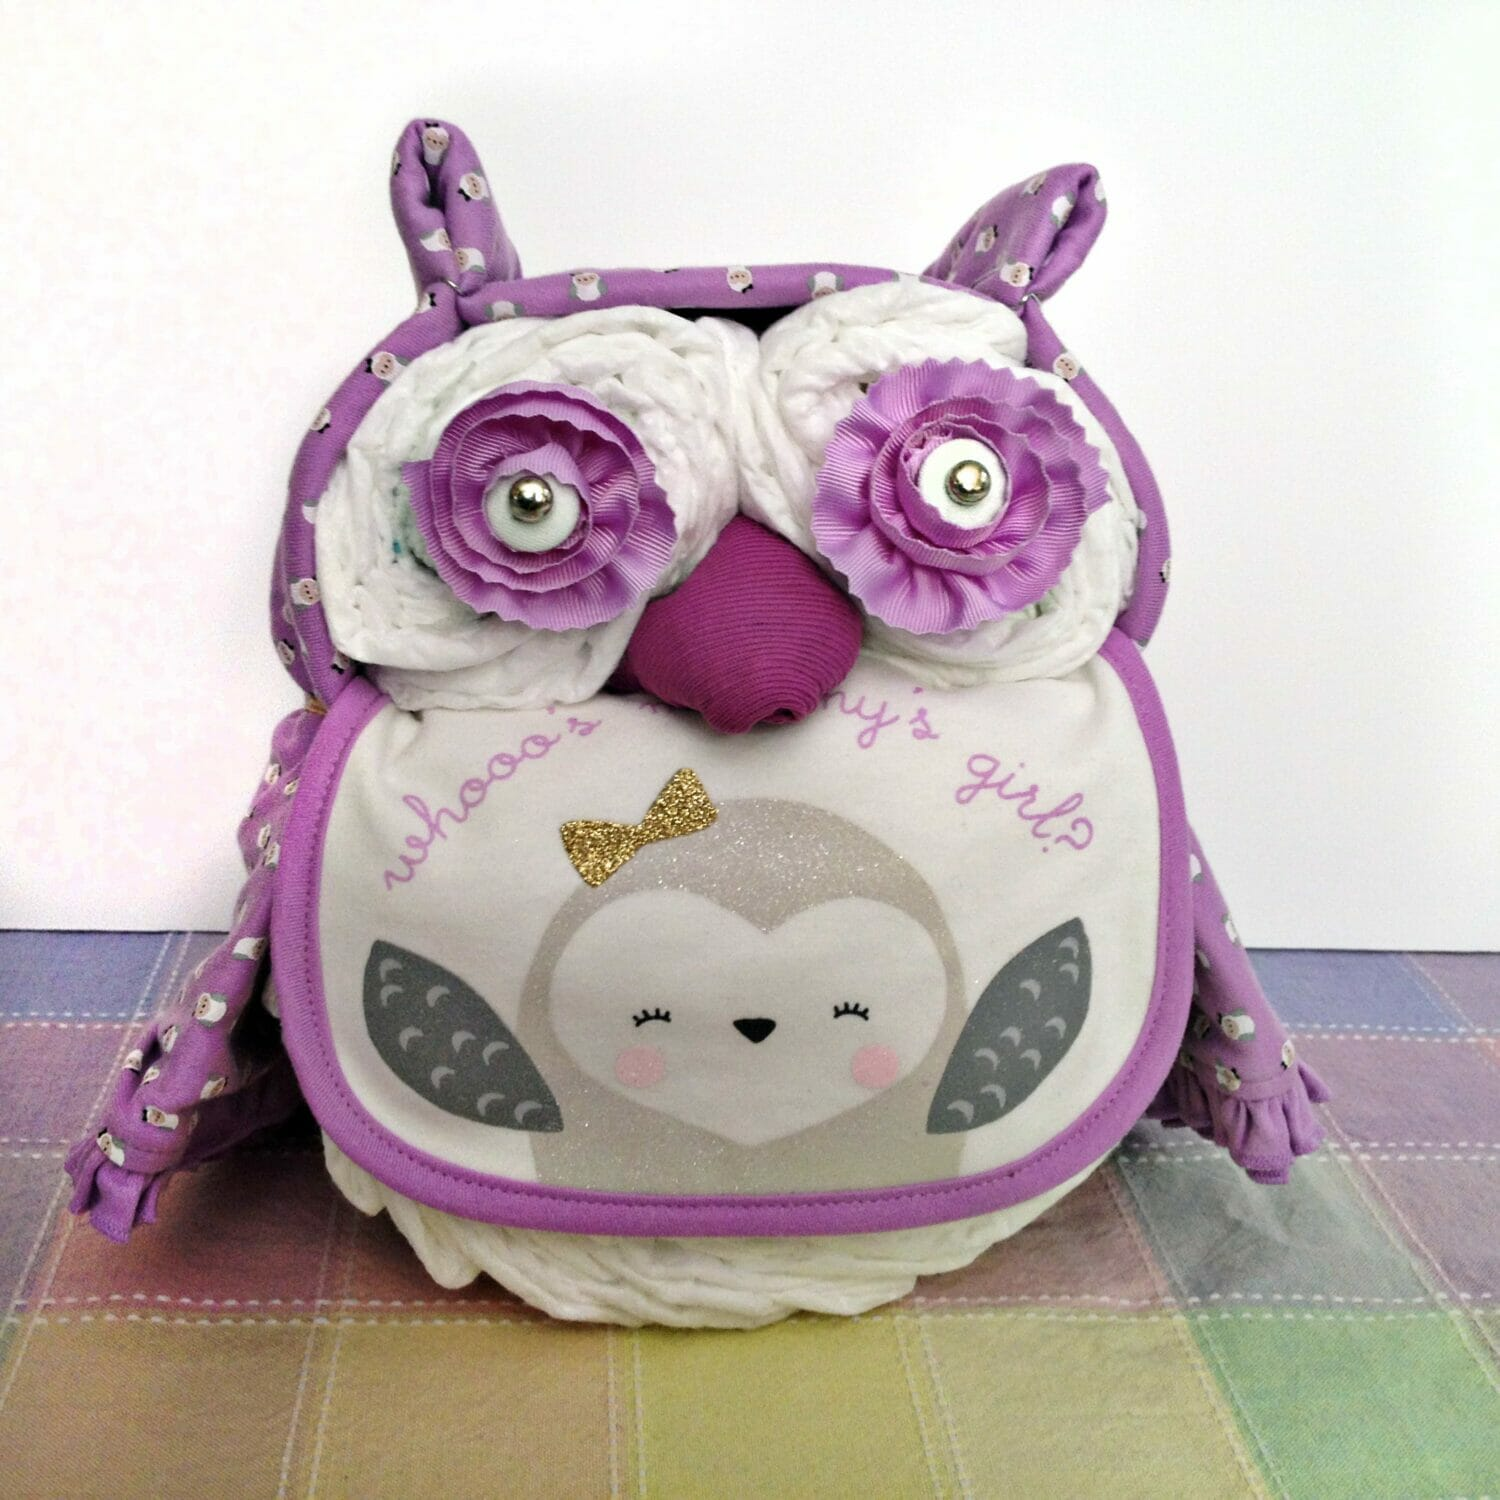 Owl themed diaper cake made with a purple baby blanket, purple bib and flower eyes sitting on a pastel tablecloth.